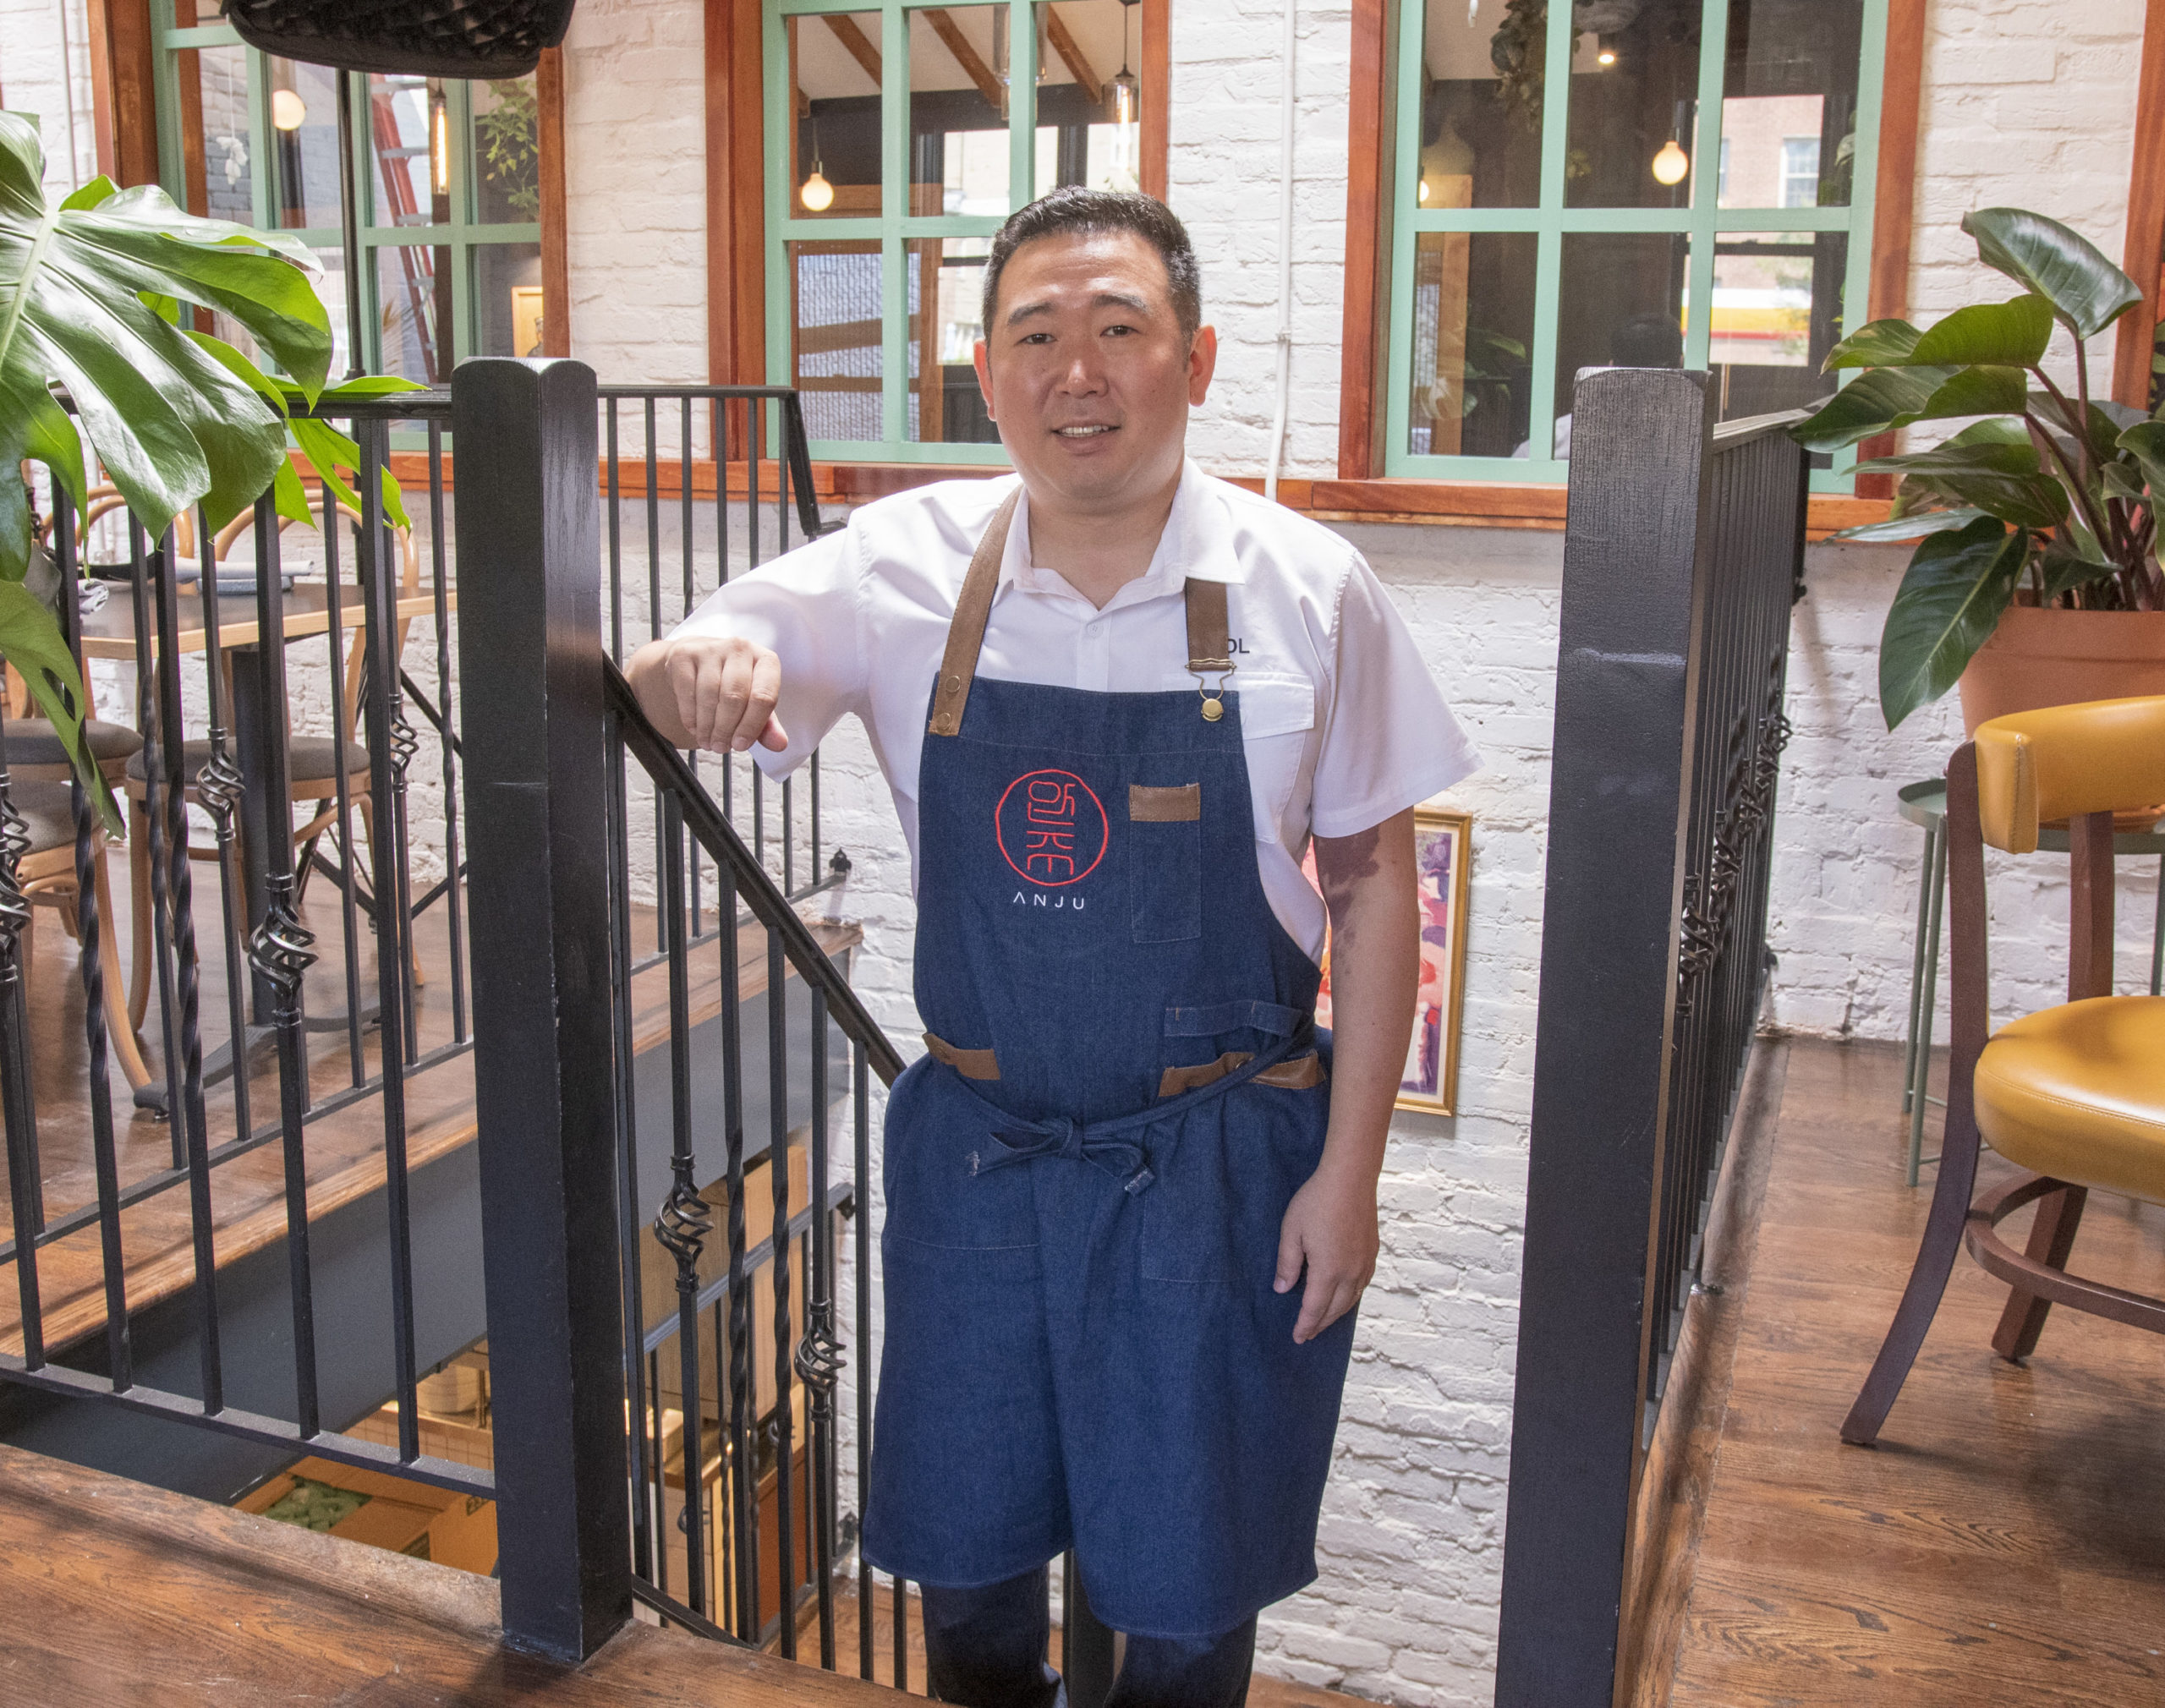 Chef/co-owner Danny Lee of Chiko and Anju